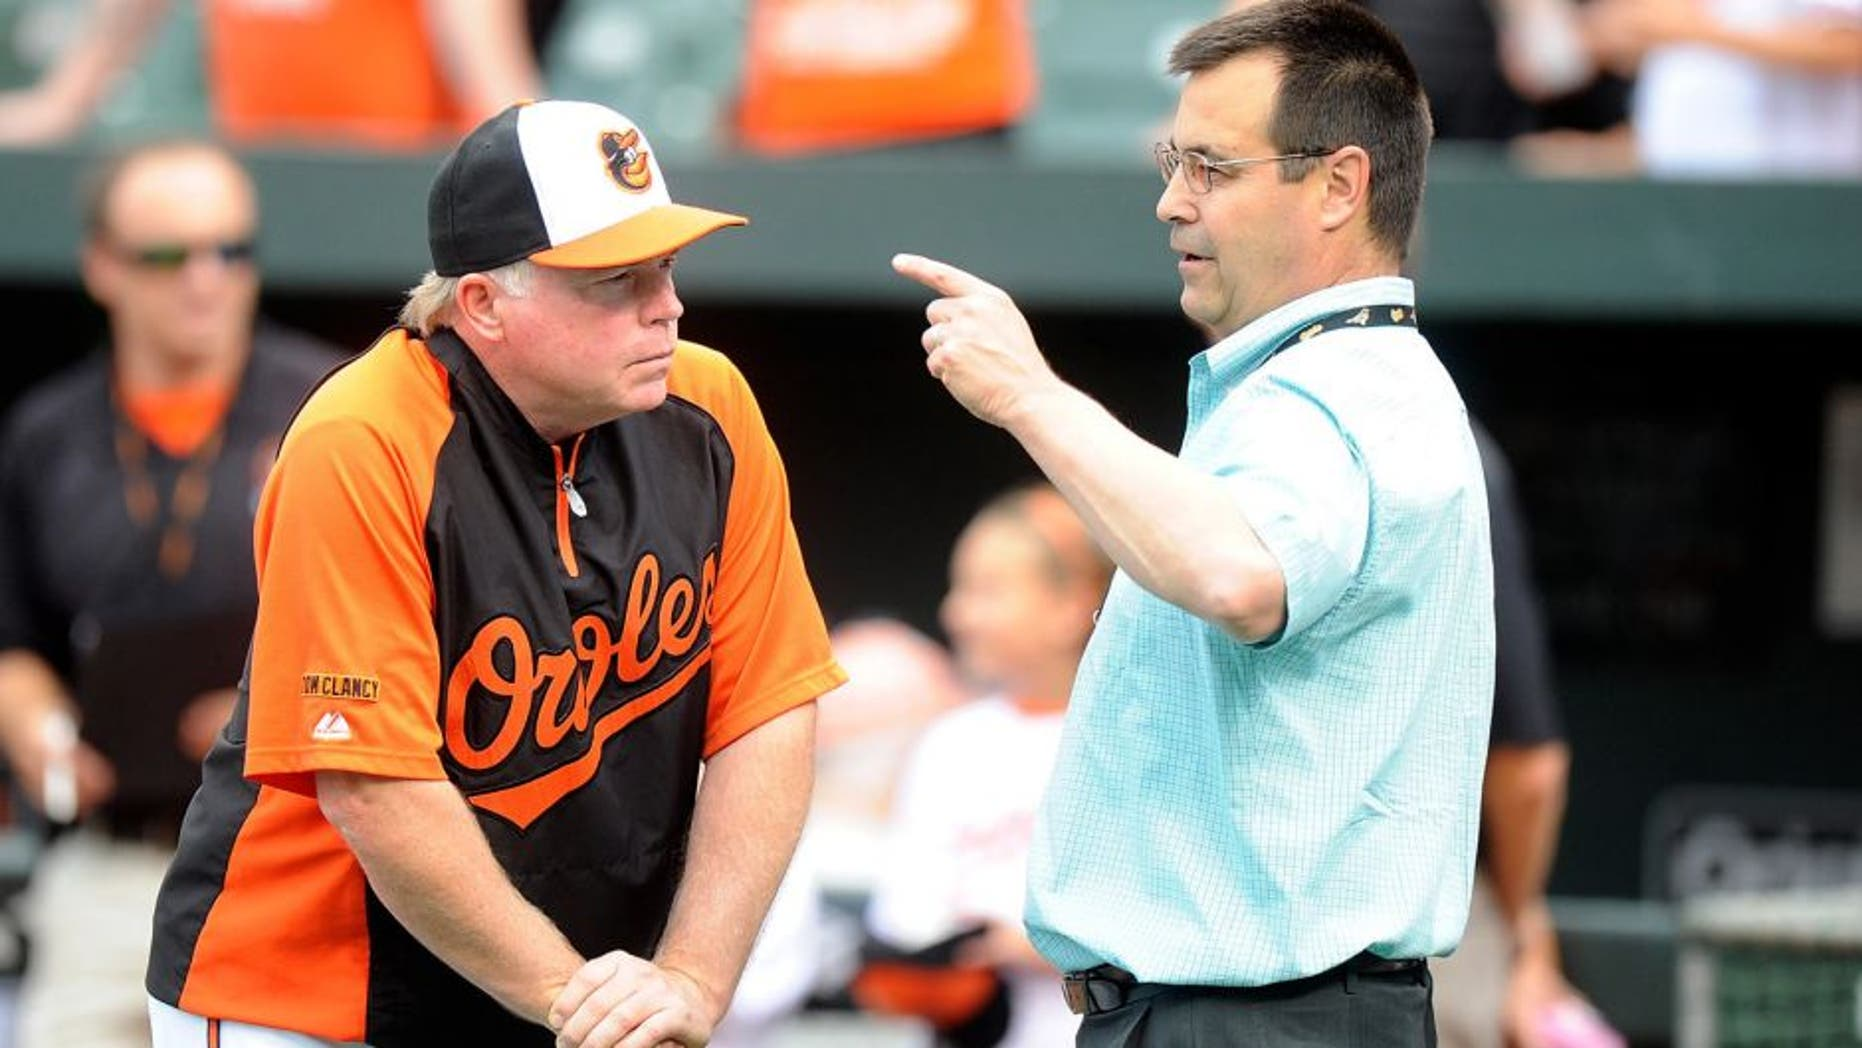 BALTIMORE, MD - AUGUST 02: General Manager Dan Duquette and manager Buck Showalter #26 of the Baltimore Orioles talk before the game against the Seattle Mariners at Oriole Park at Camden Yards on August 2, 2014 in Baltimore, Maryland. (Photo by G Fiume/Getty Images)